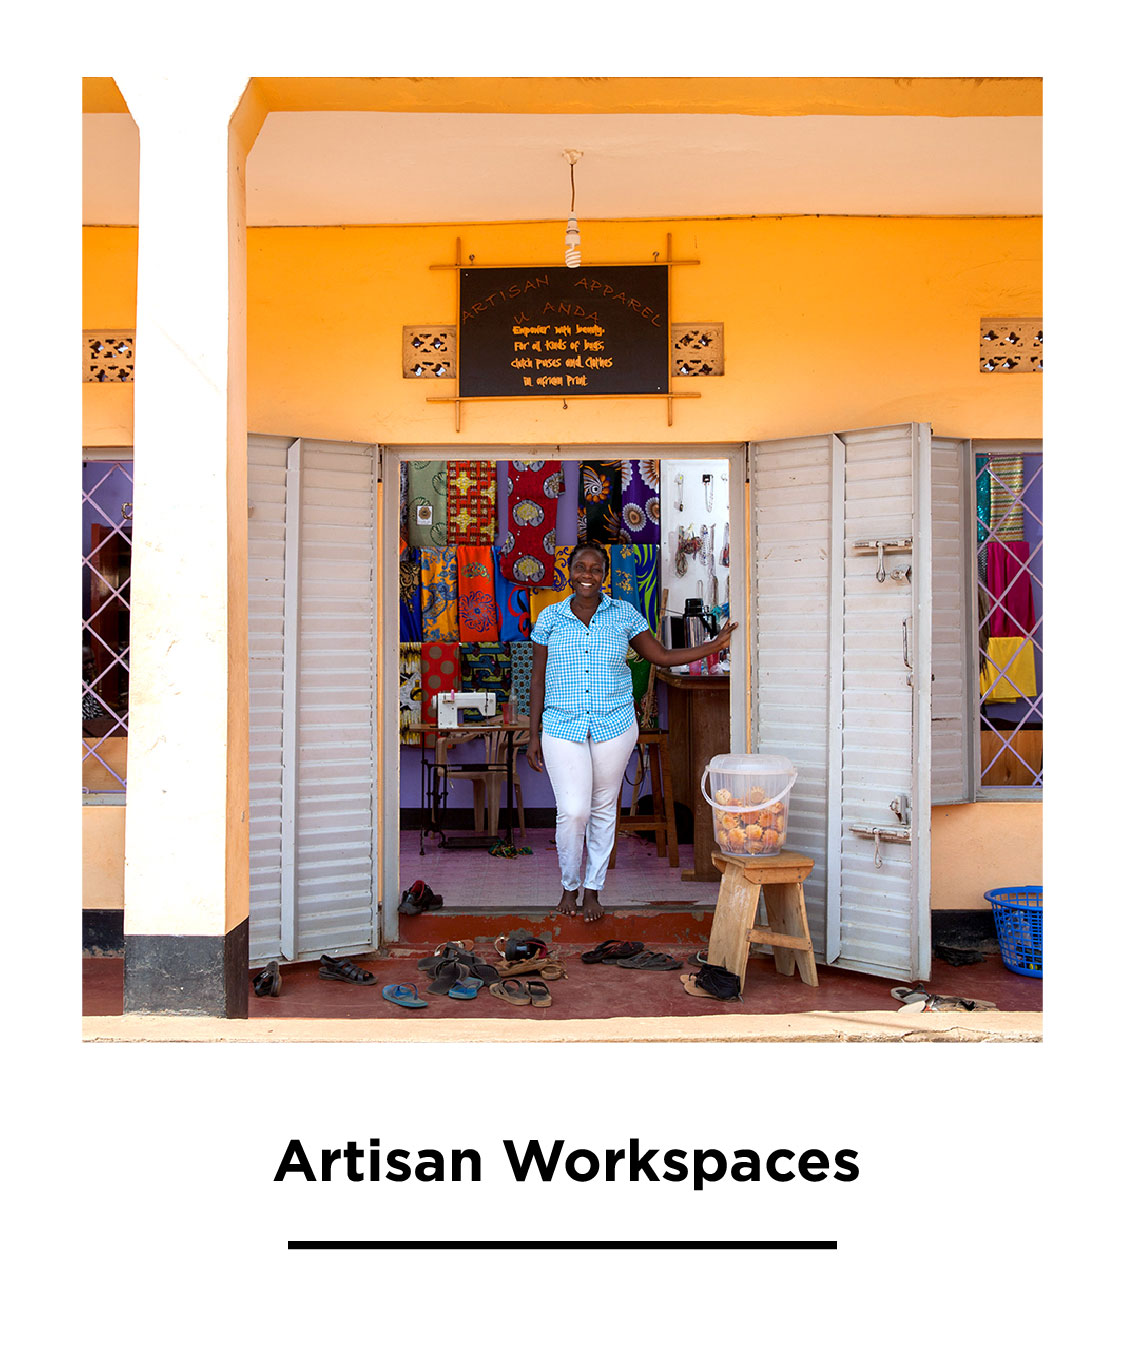 After having a workshop for five years, the need for growth in these areas was apparent: technology, physical space, community collaborations, and diverse industry programs. The Artisan Workspace was designed to advance these opportunities.